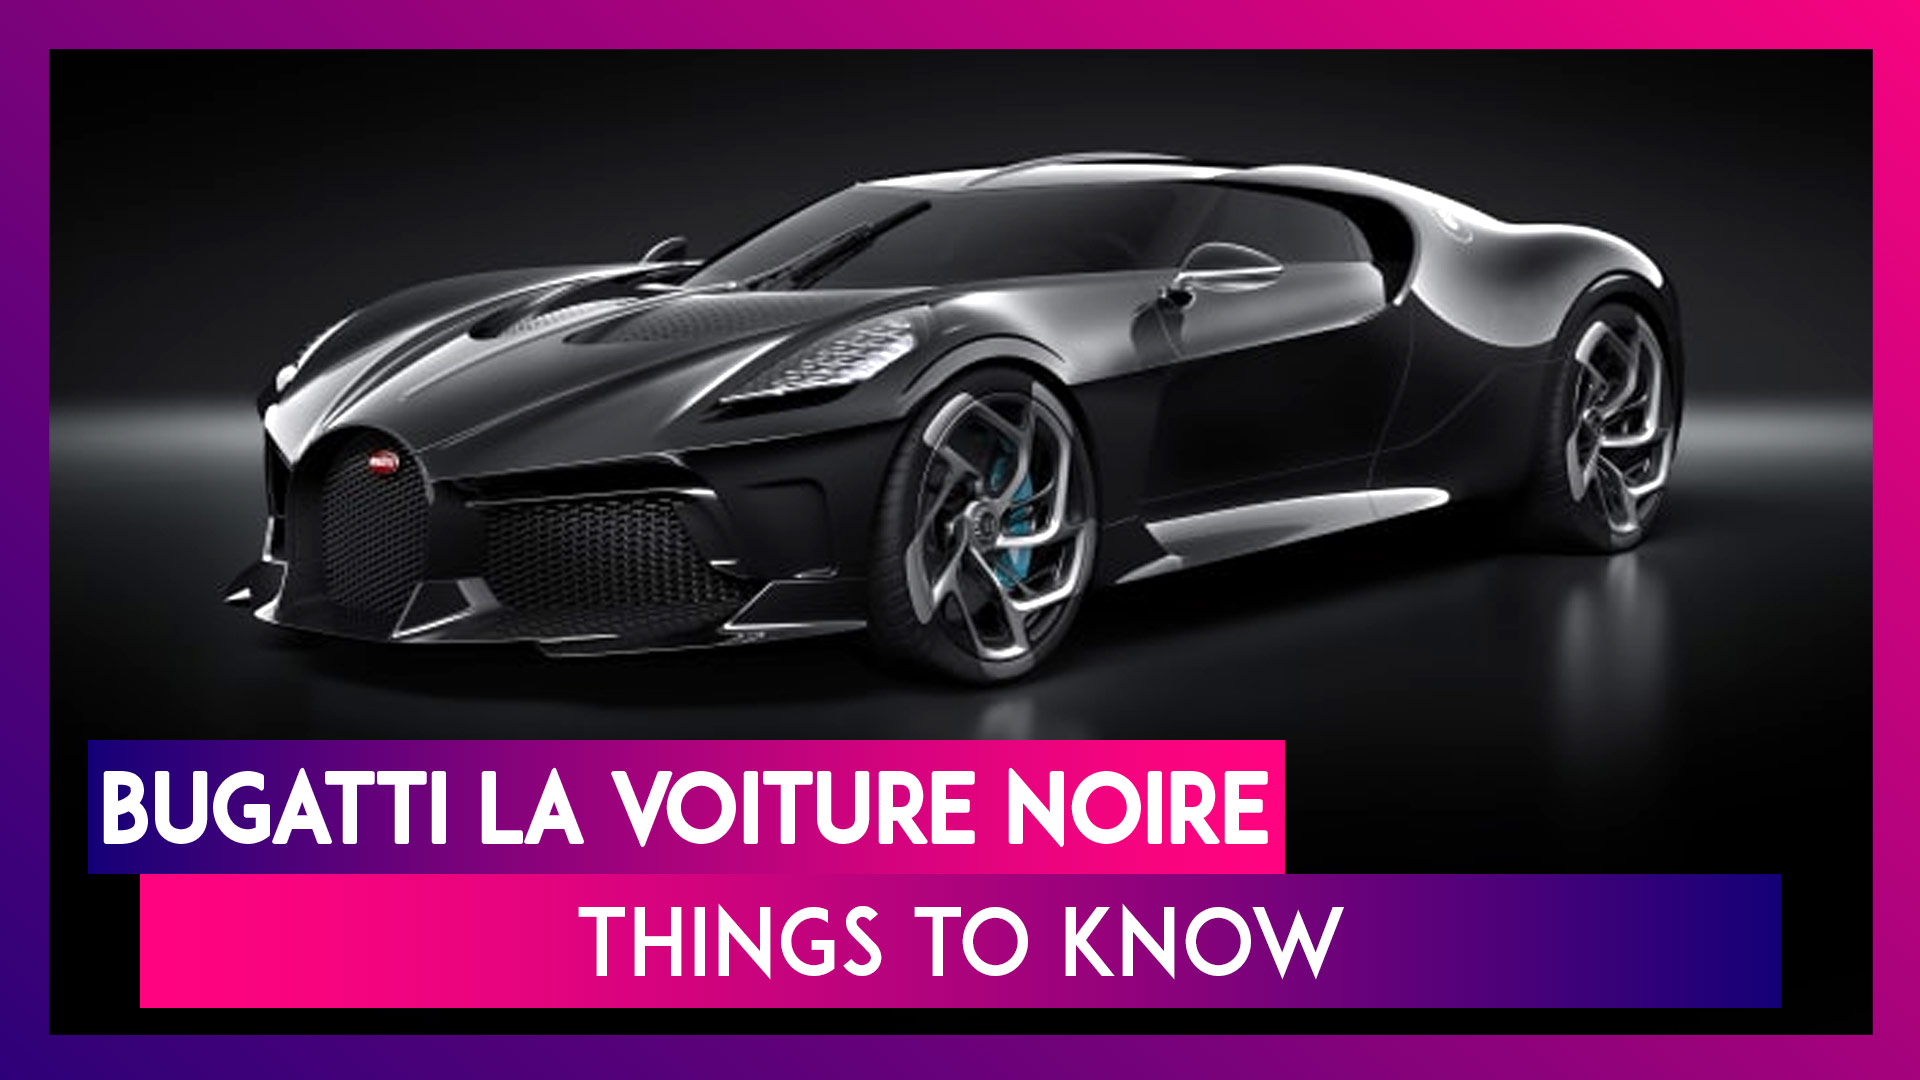 Bugatti La Voiture Noire: Things To Know About The World's Most Expensive Car